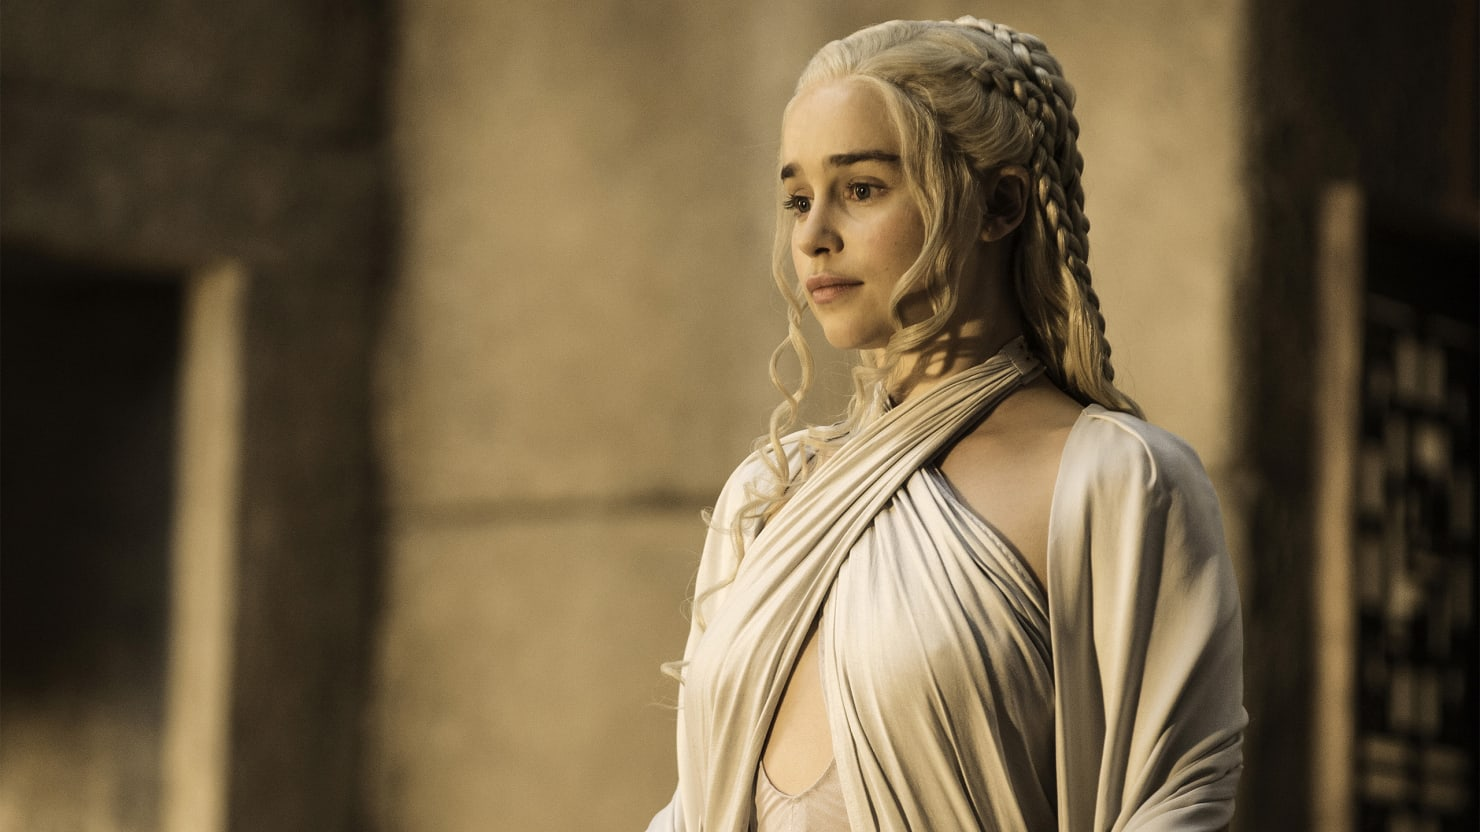 'Game of Thrones' Season 5 Premiere: Welcome to the Most Political Season Yet